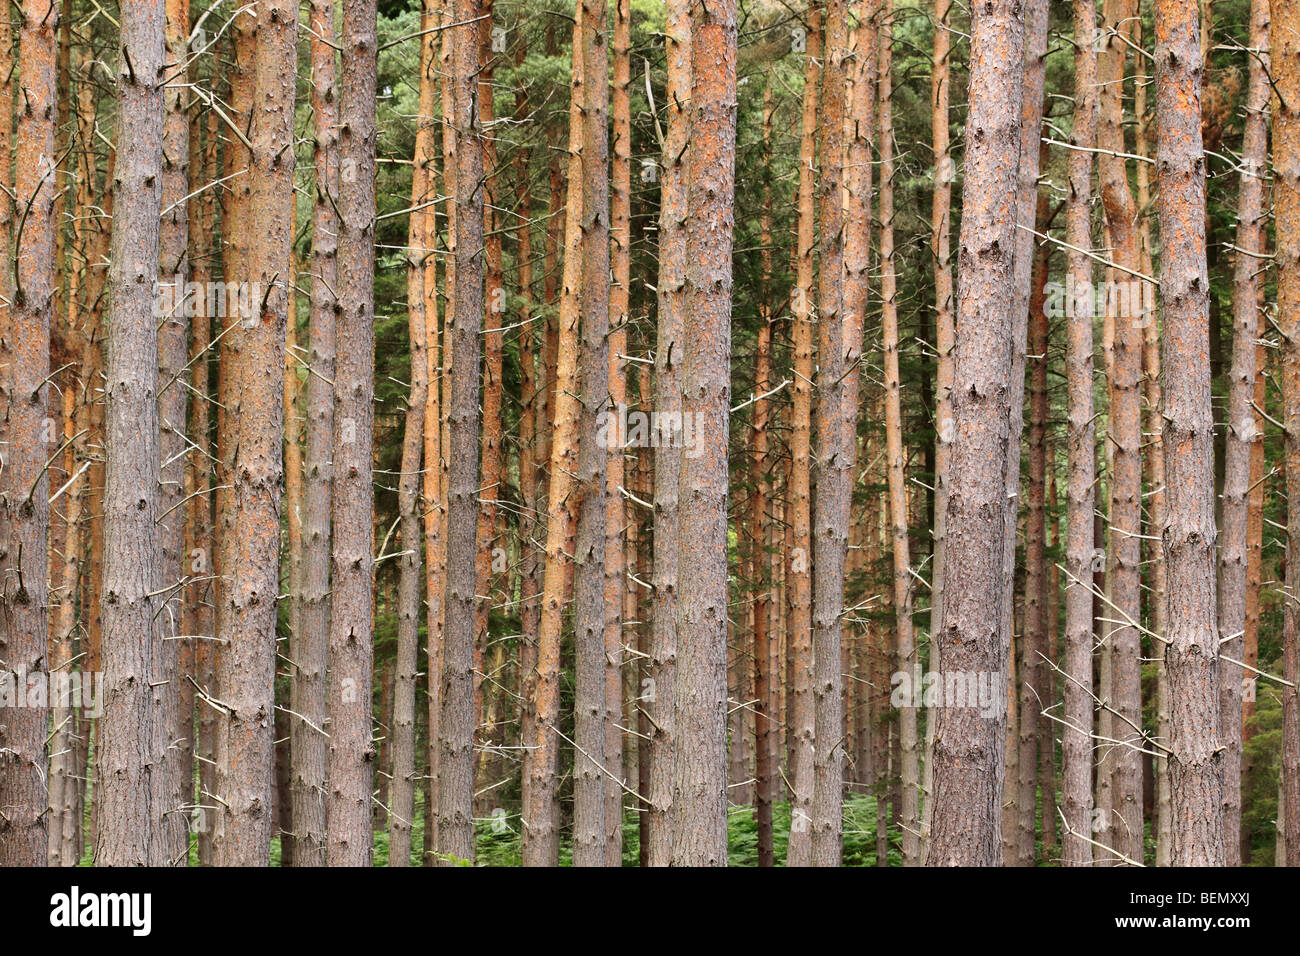 Coniferous forest plantation, England UK - Stock Image